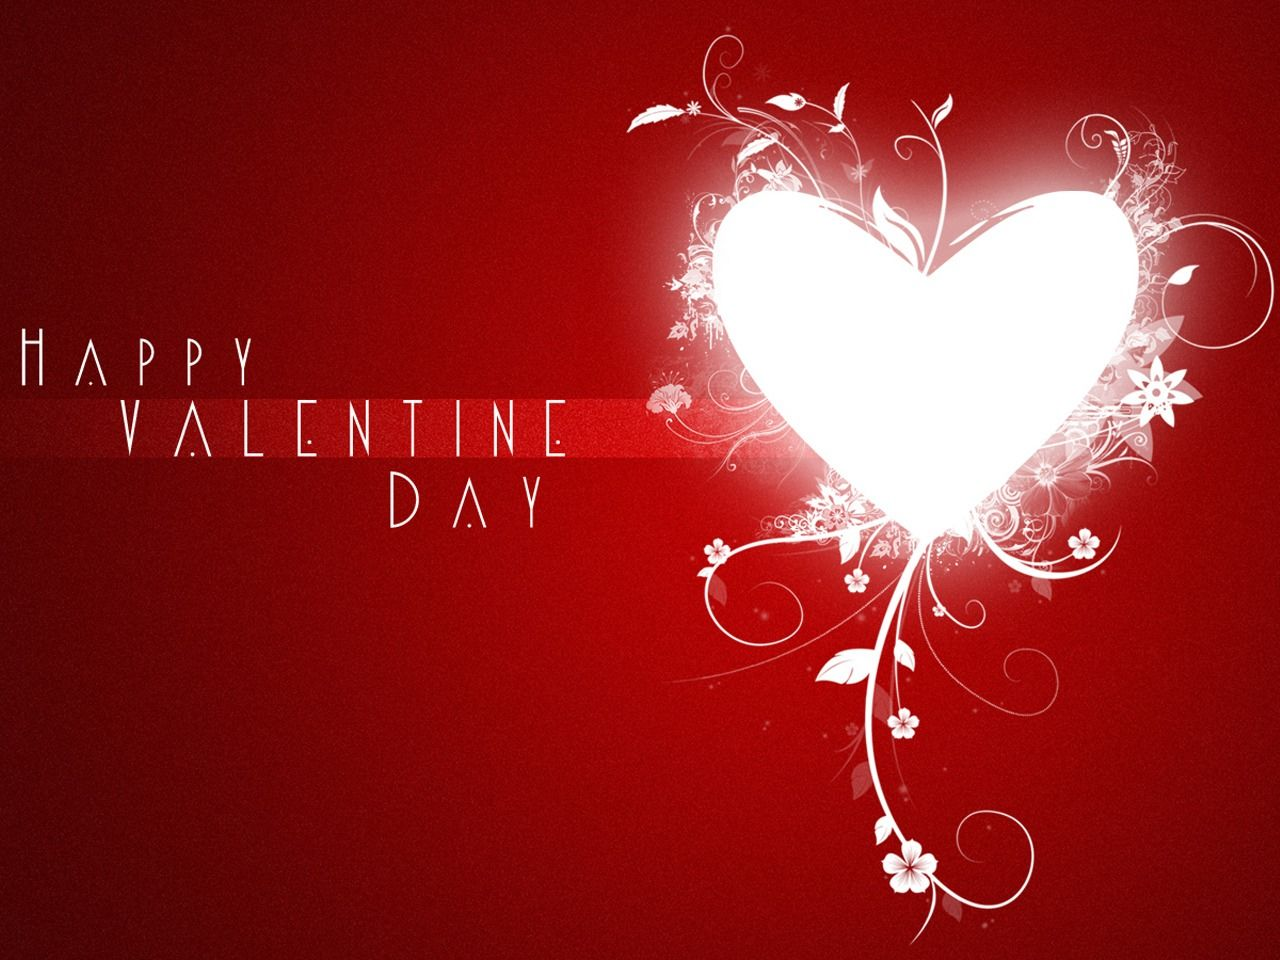 Happy Valentines Day  Quotes Hey There Are You Looking For The Best Happy